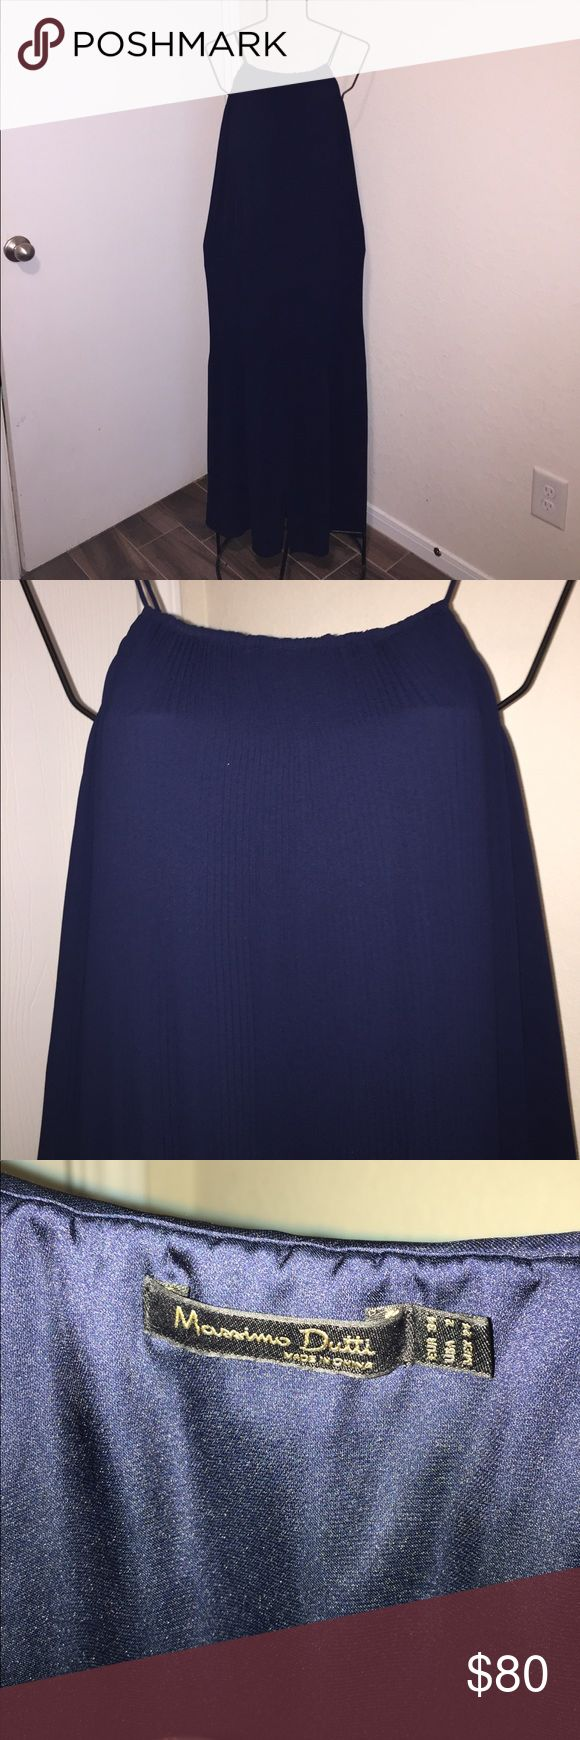 Massimo Dutti dress size 2 Excellent condition, these pictures do no justice for this beautiful dress. The silk lining of the dress is about knee length & the outer part of the dress is floor length! Dark navy blue, dry clean only Massimo Dutti Dresses